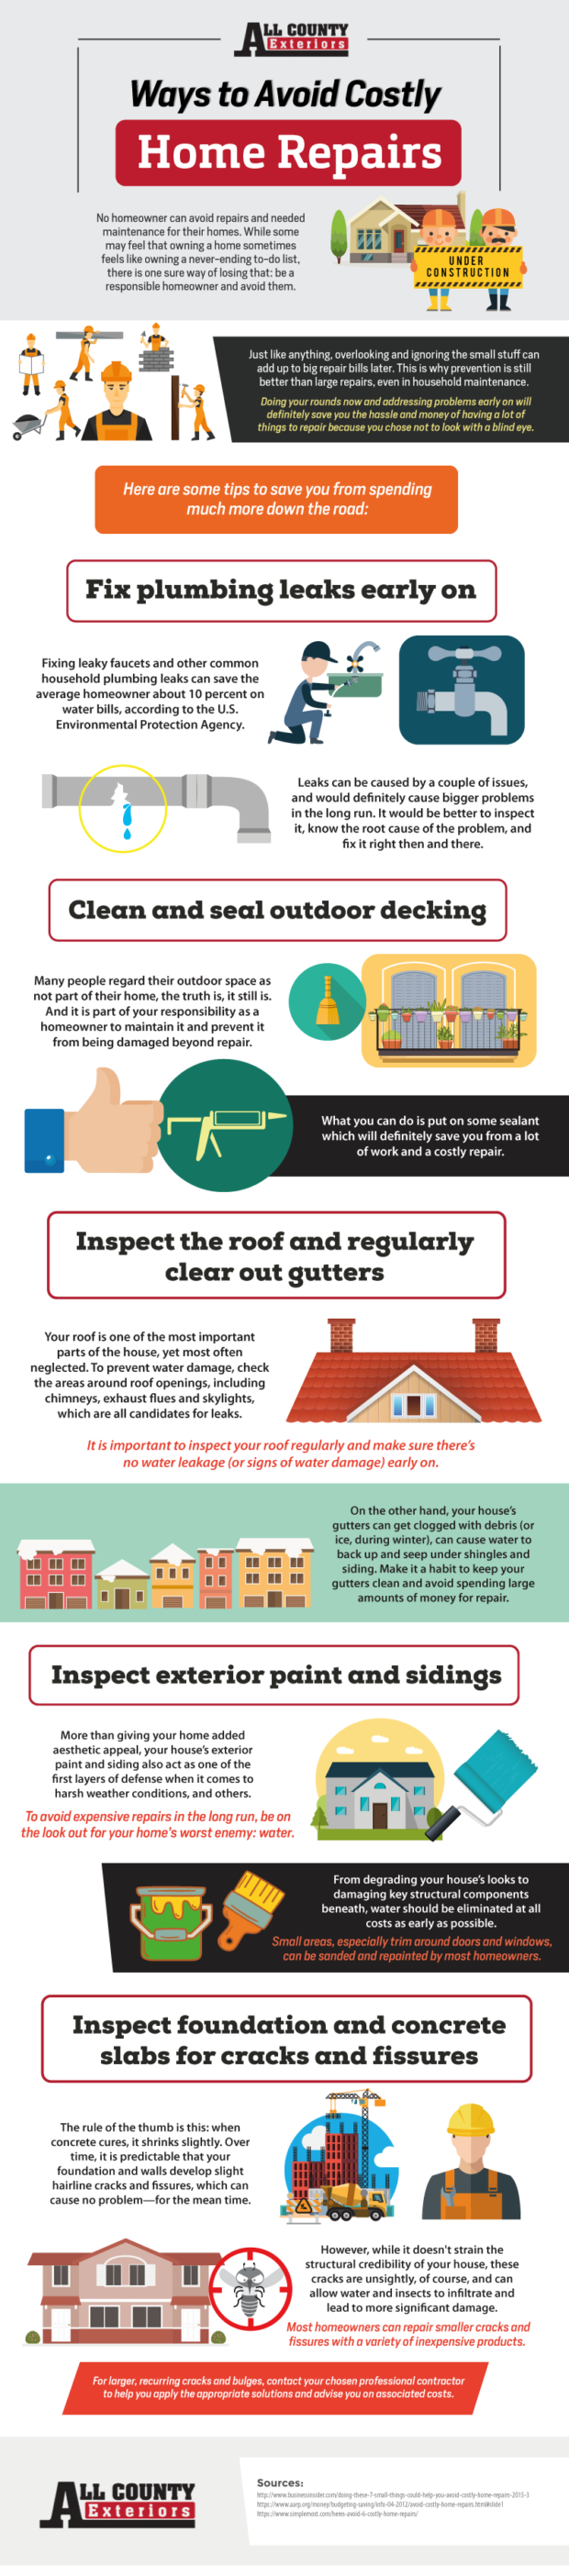 Ways to Avoid Costly Home Repairs